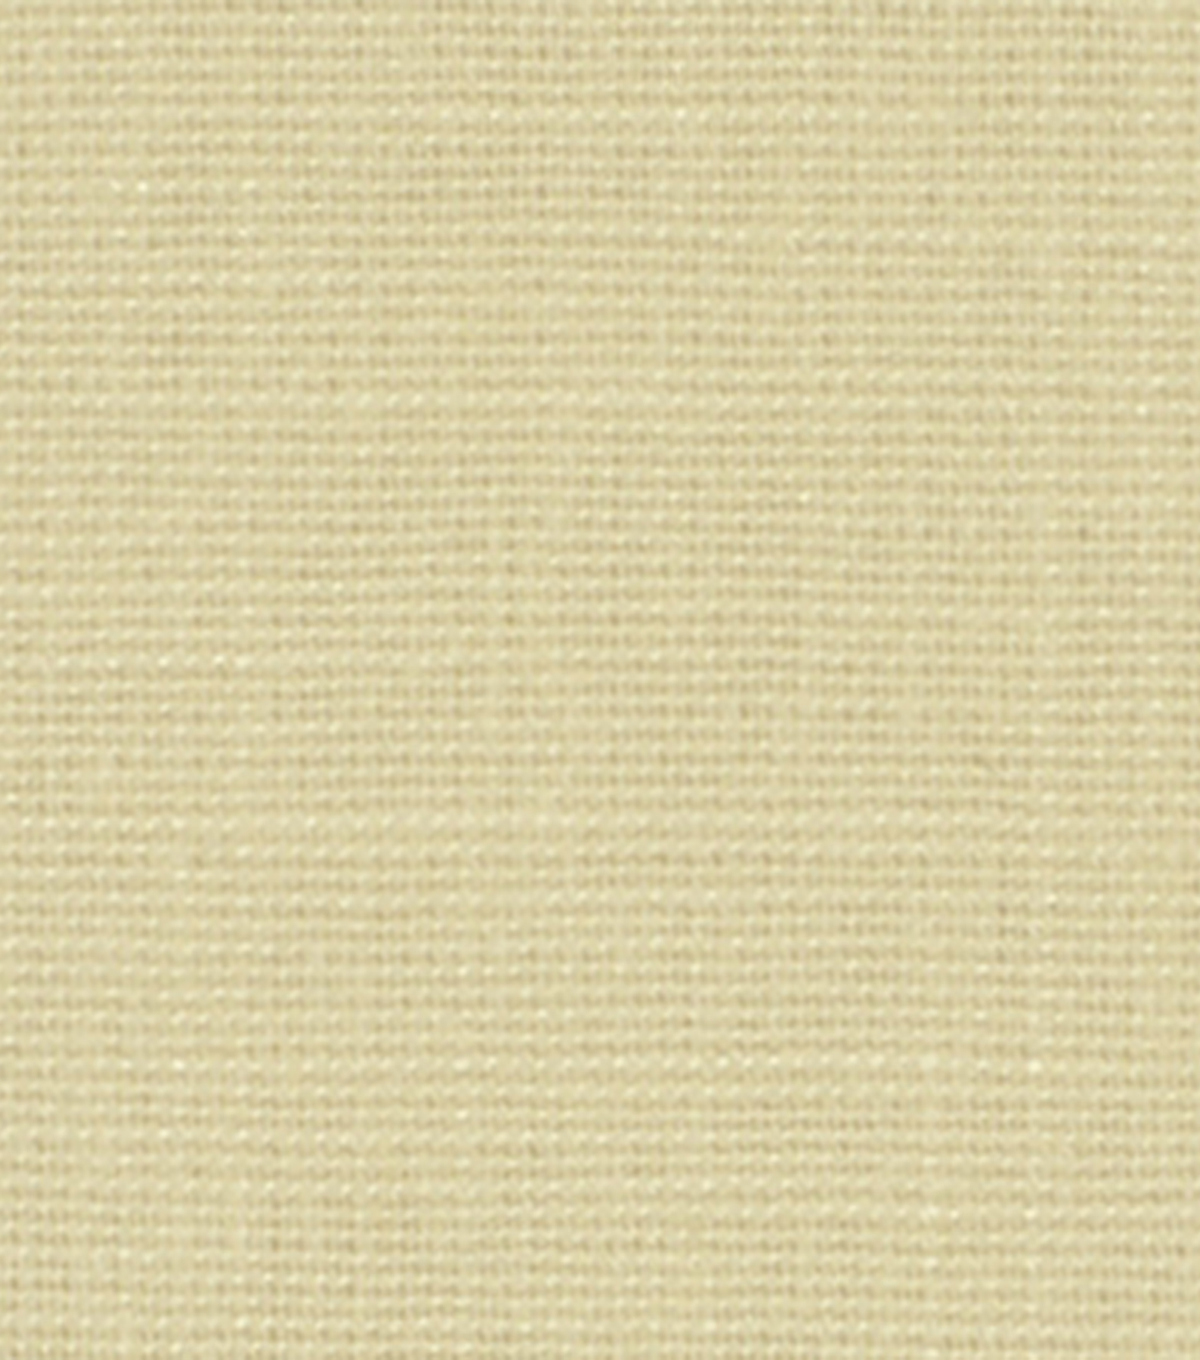 Home Decor 8\u0022x8\u0022 Fabric Swatch-Robert Allen Jaden Ivory